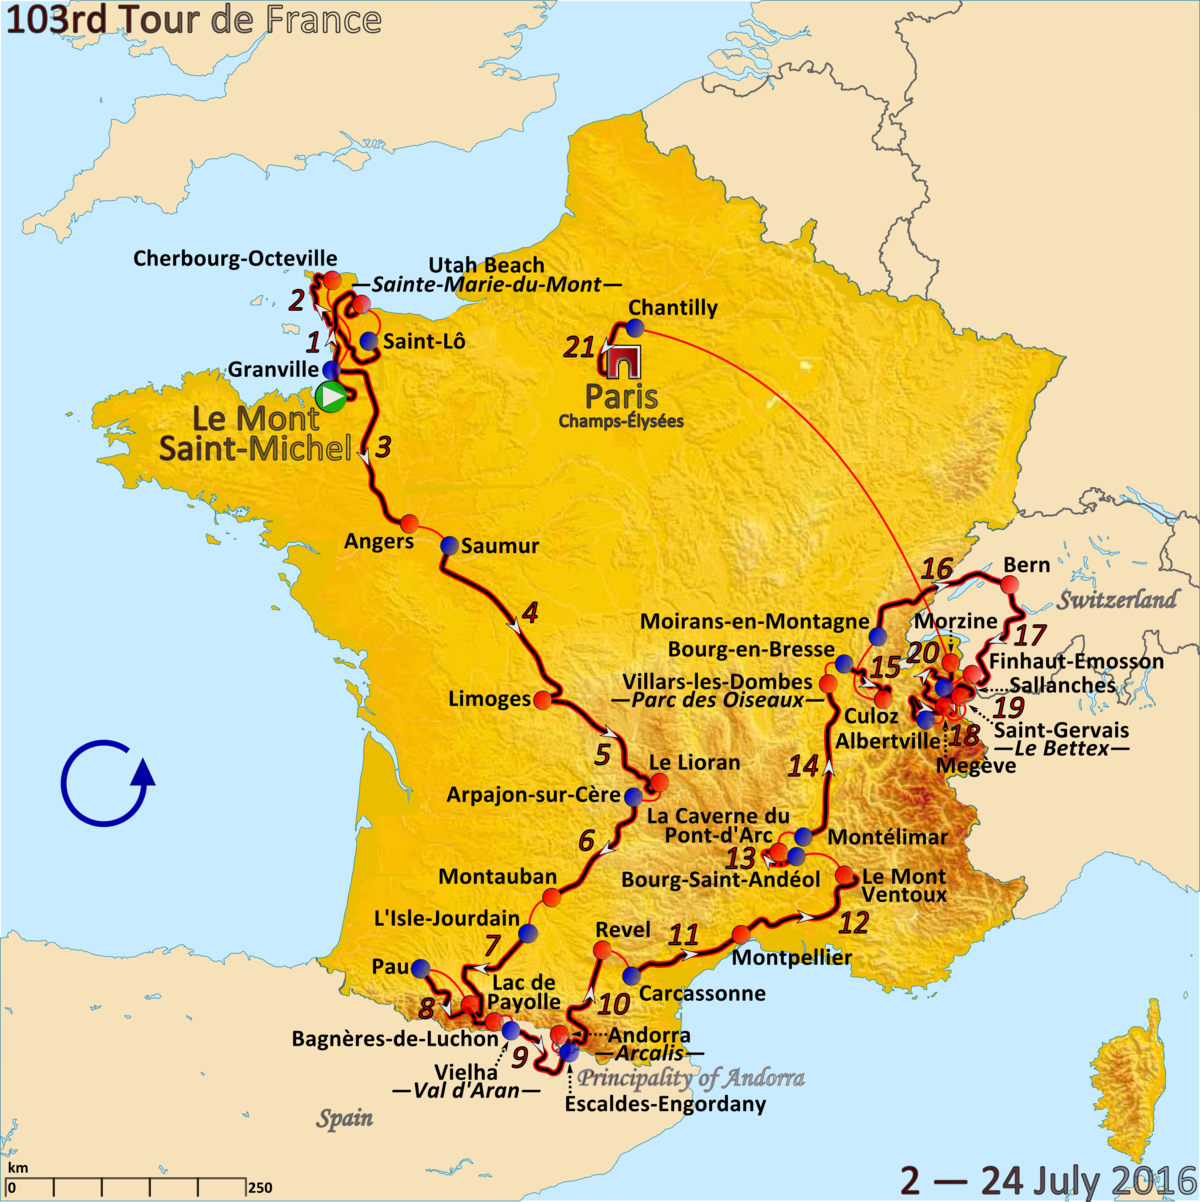 2016 Tour de France, Stage 12 to Stage 21